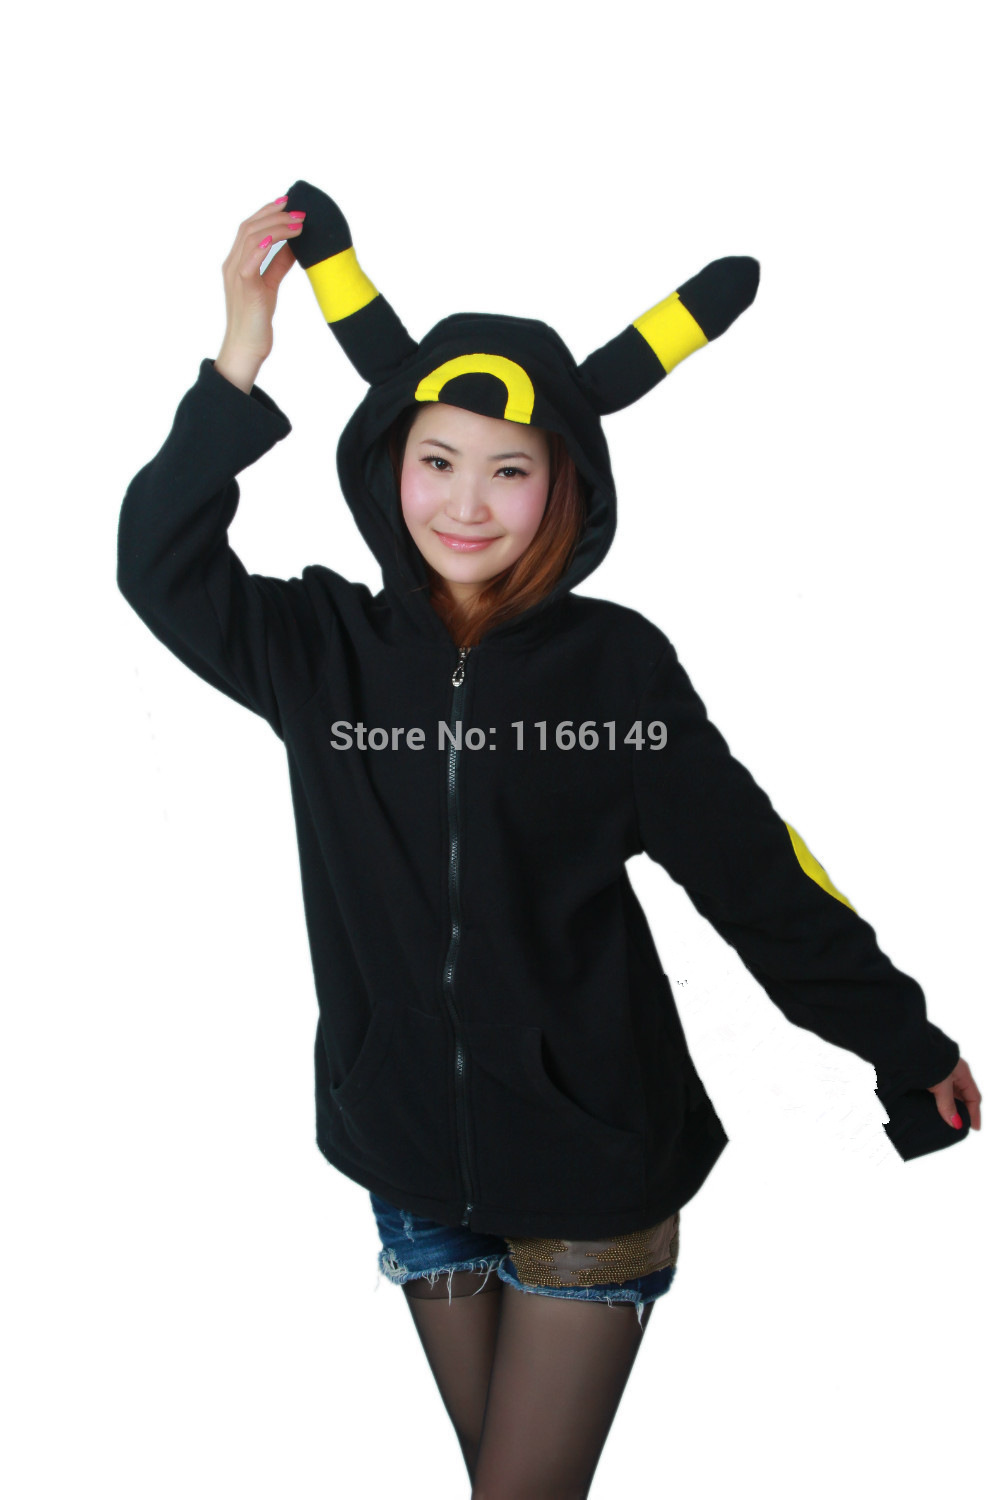 cosplay-animal-anime-font-b-pokemon-b-font-monster-umbreon-black-hooded-hoodie-sweatshirts-with-ears-tail-adult-women-men-polar-fleece-jacket